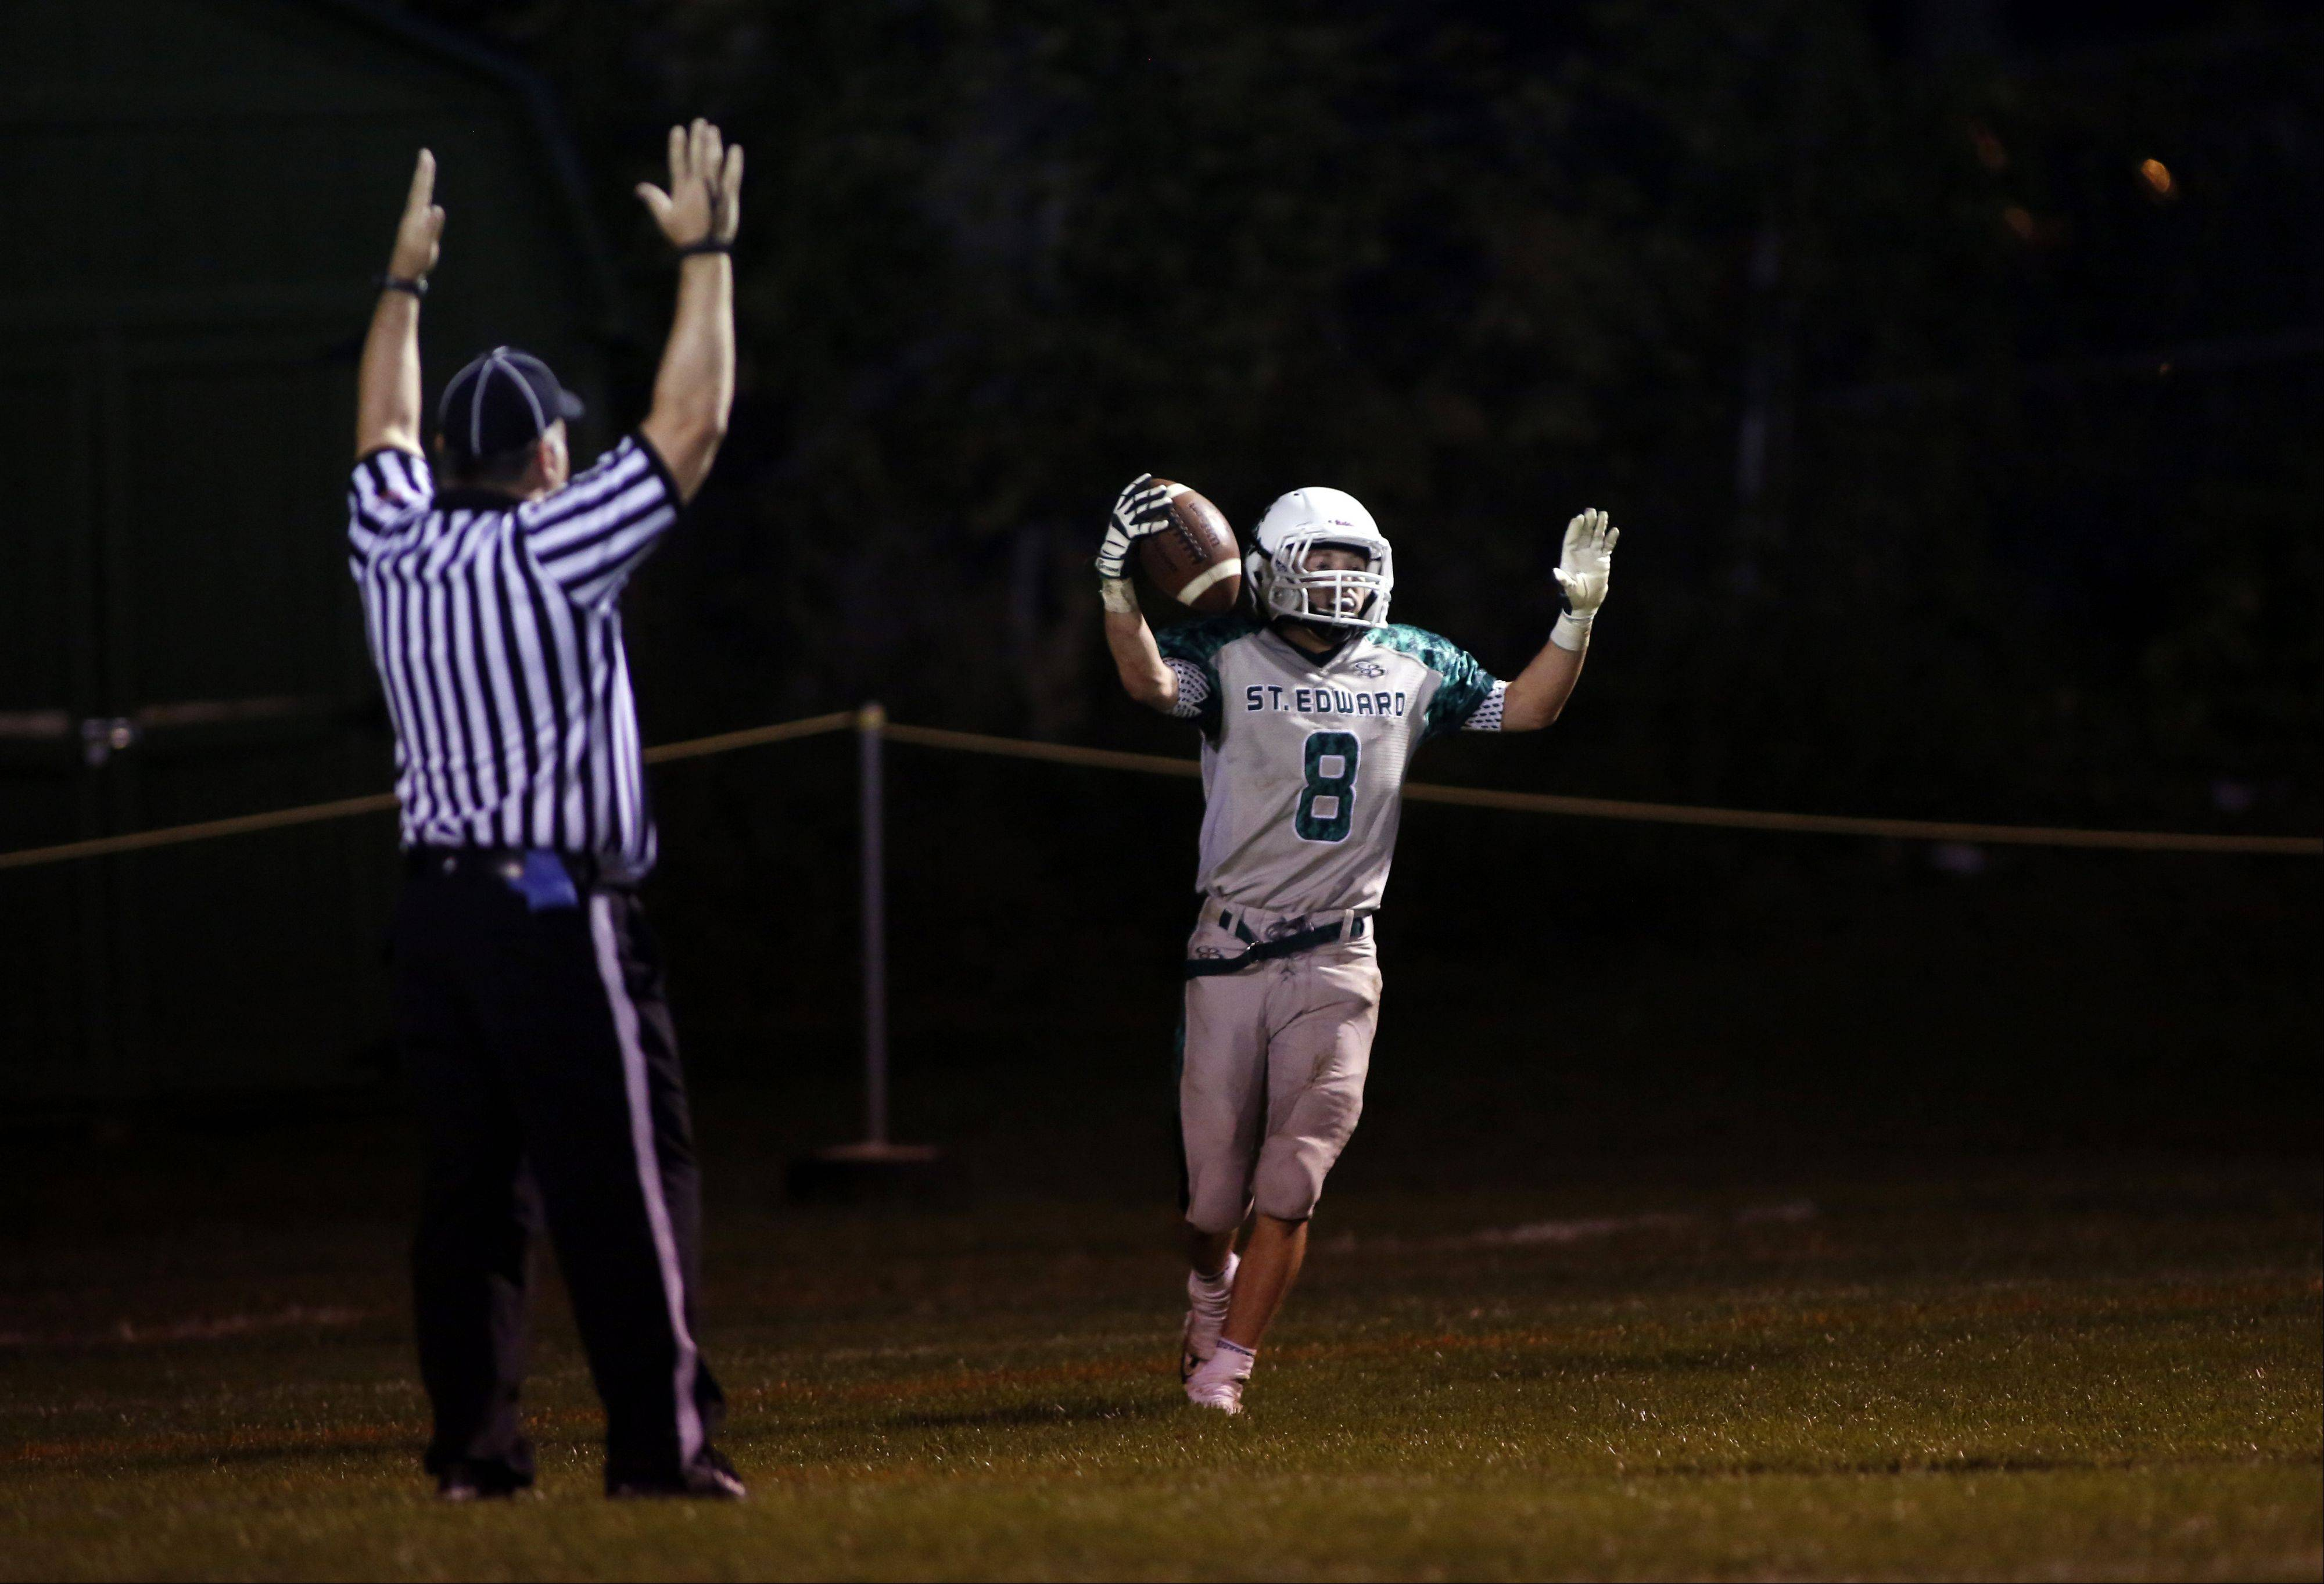 St. Edward's Michael Castoro celebrates after his second touchdown of the night.